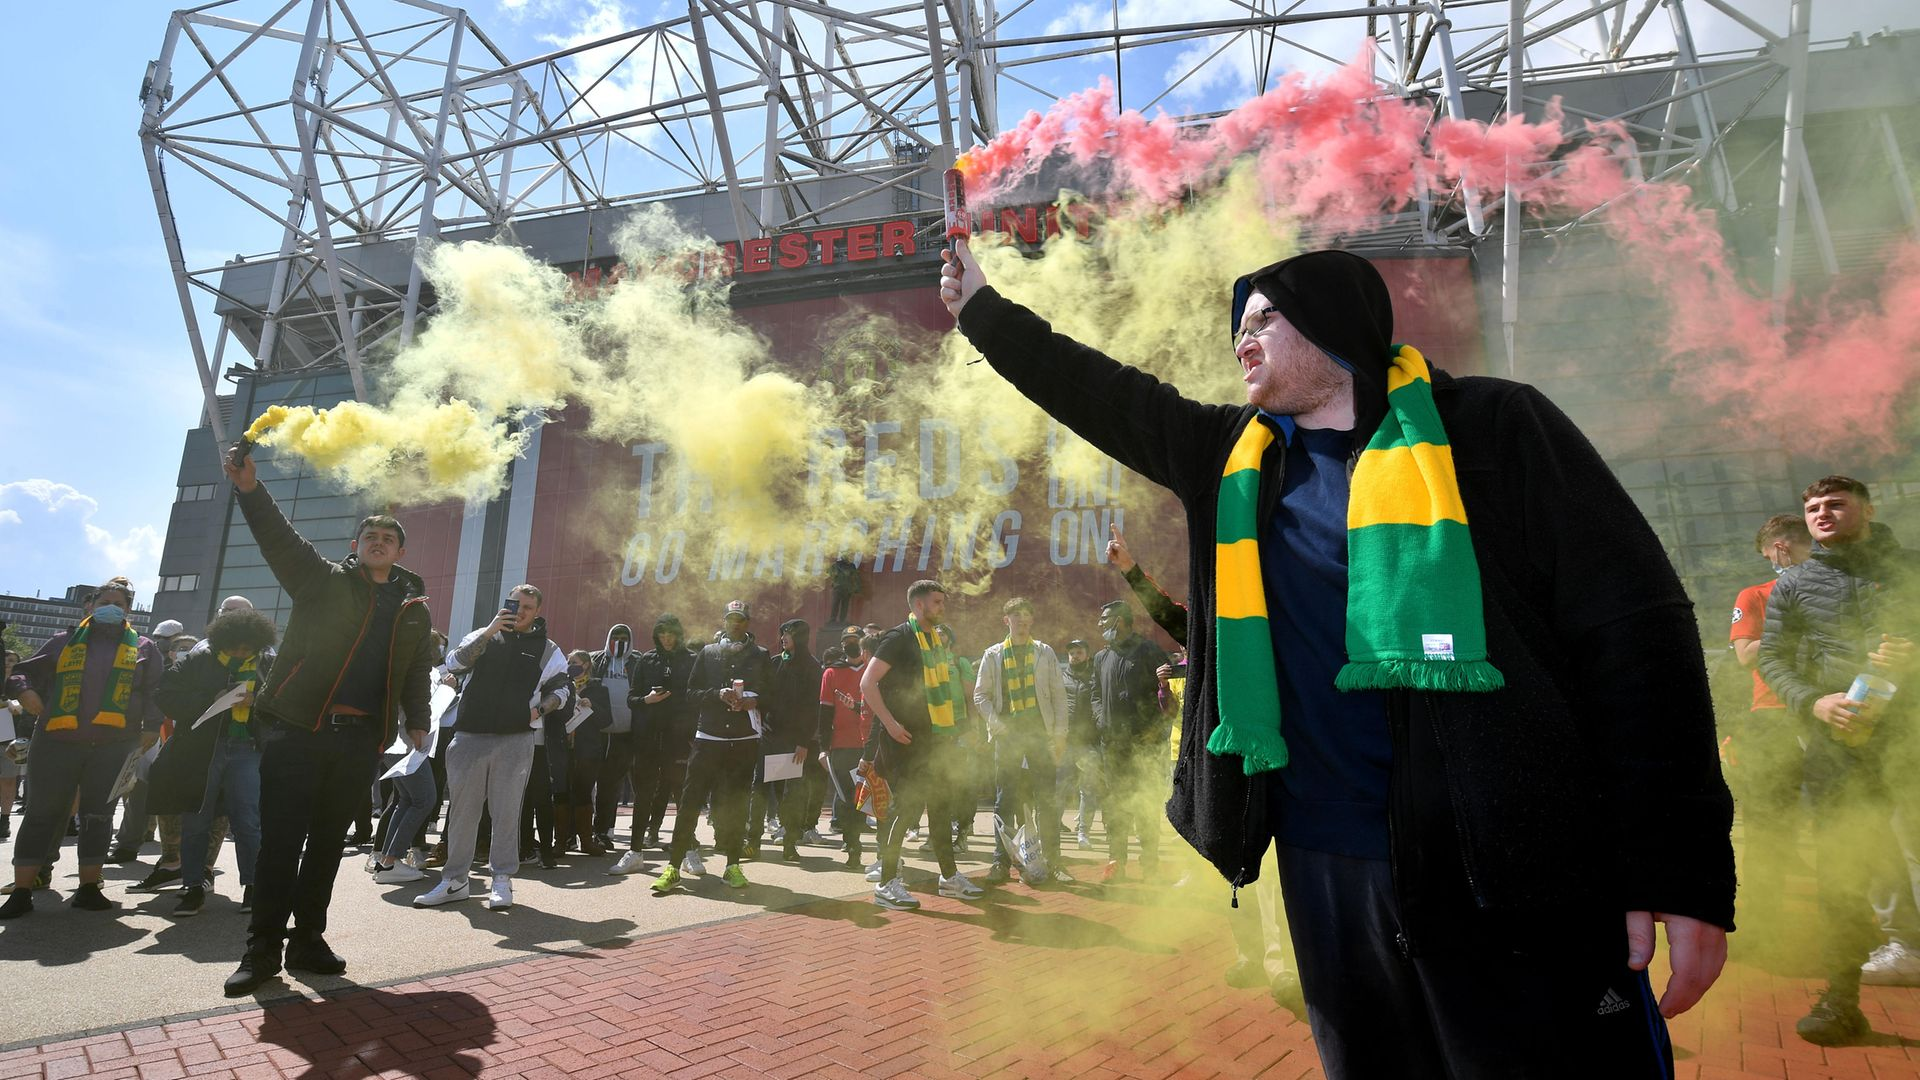 Manchester United fans protest but those who believe the German 50+1 system will bring equality (right) are misguided - Credit: Offside via Getty Images